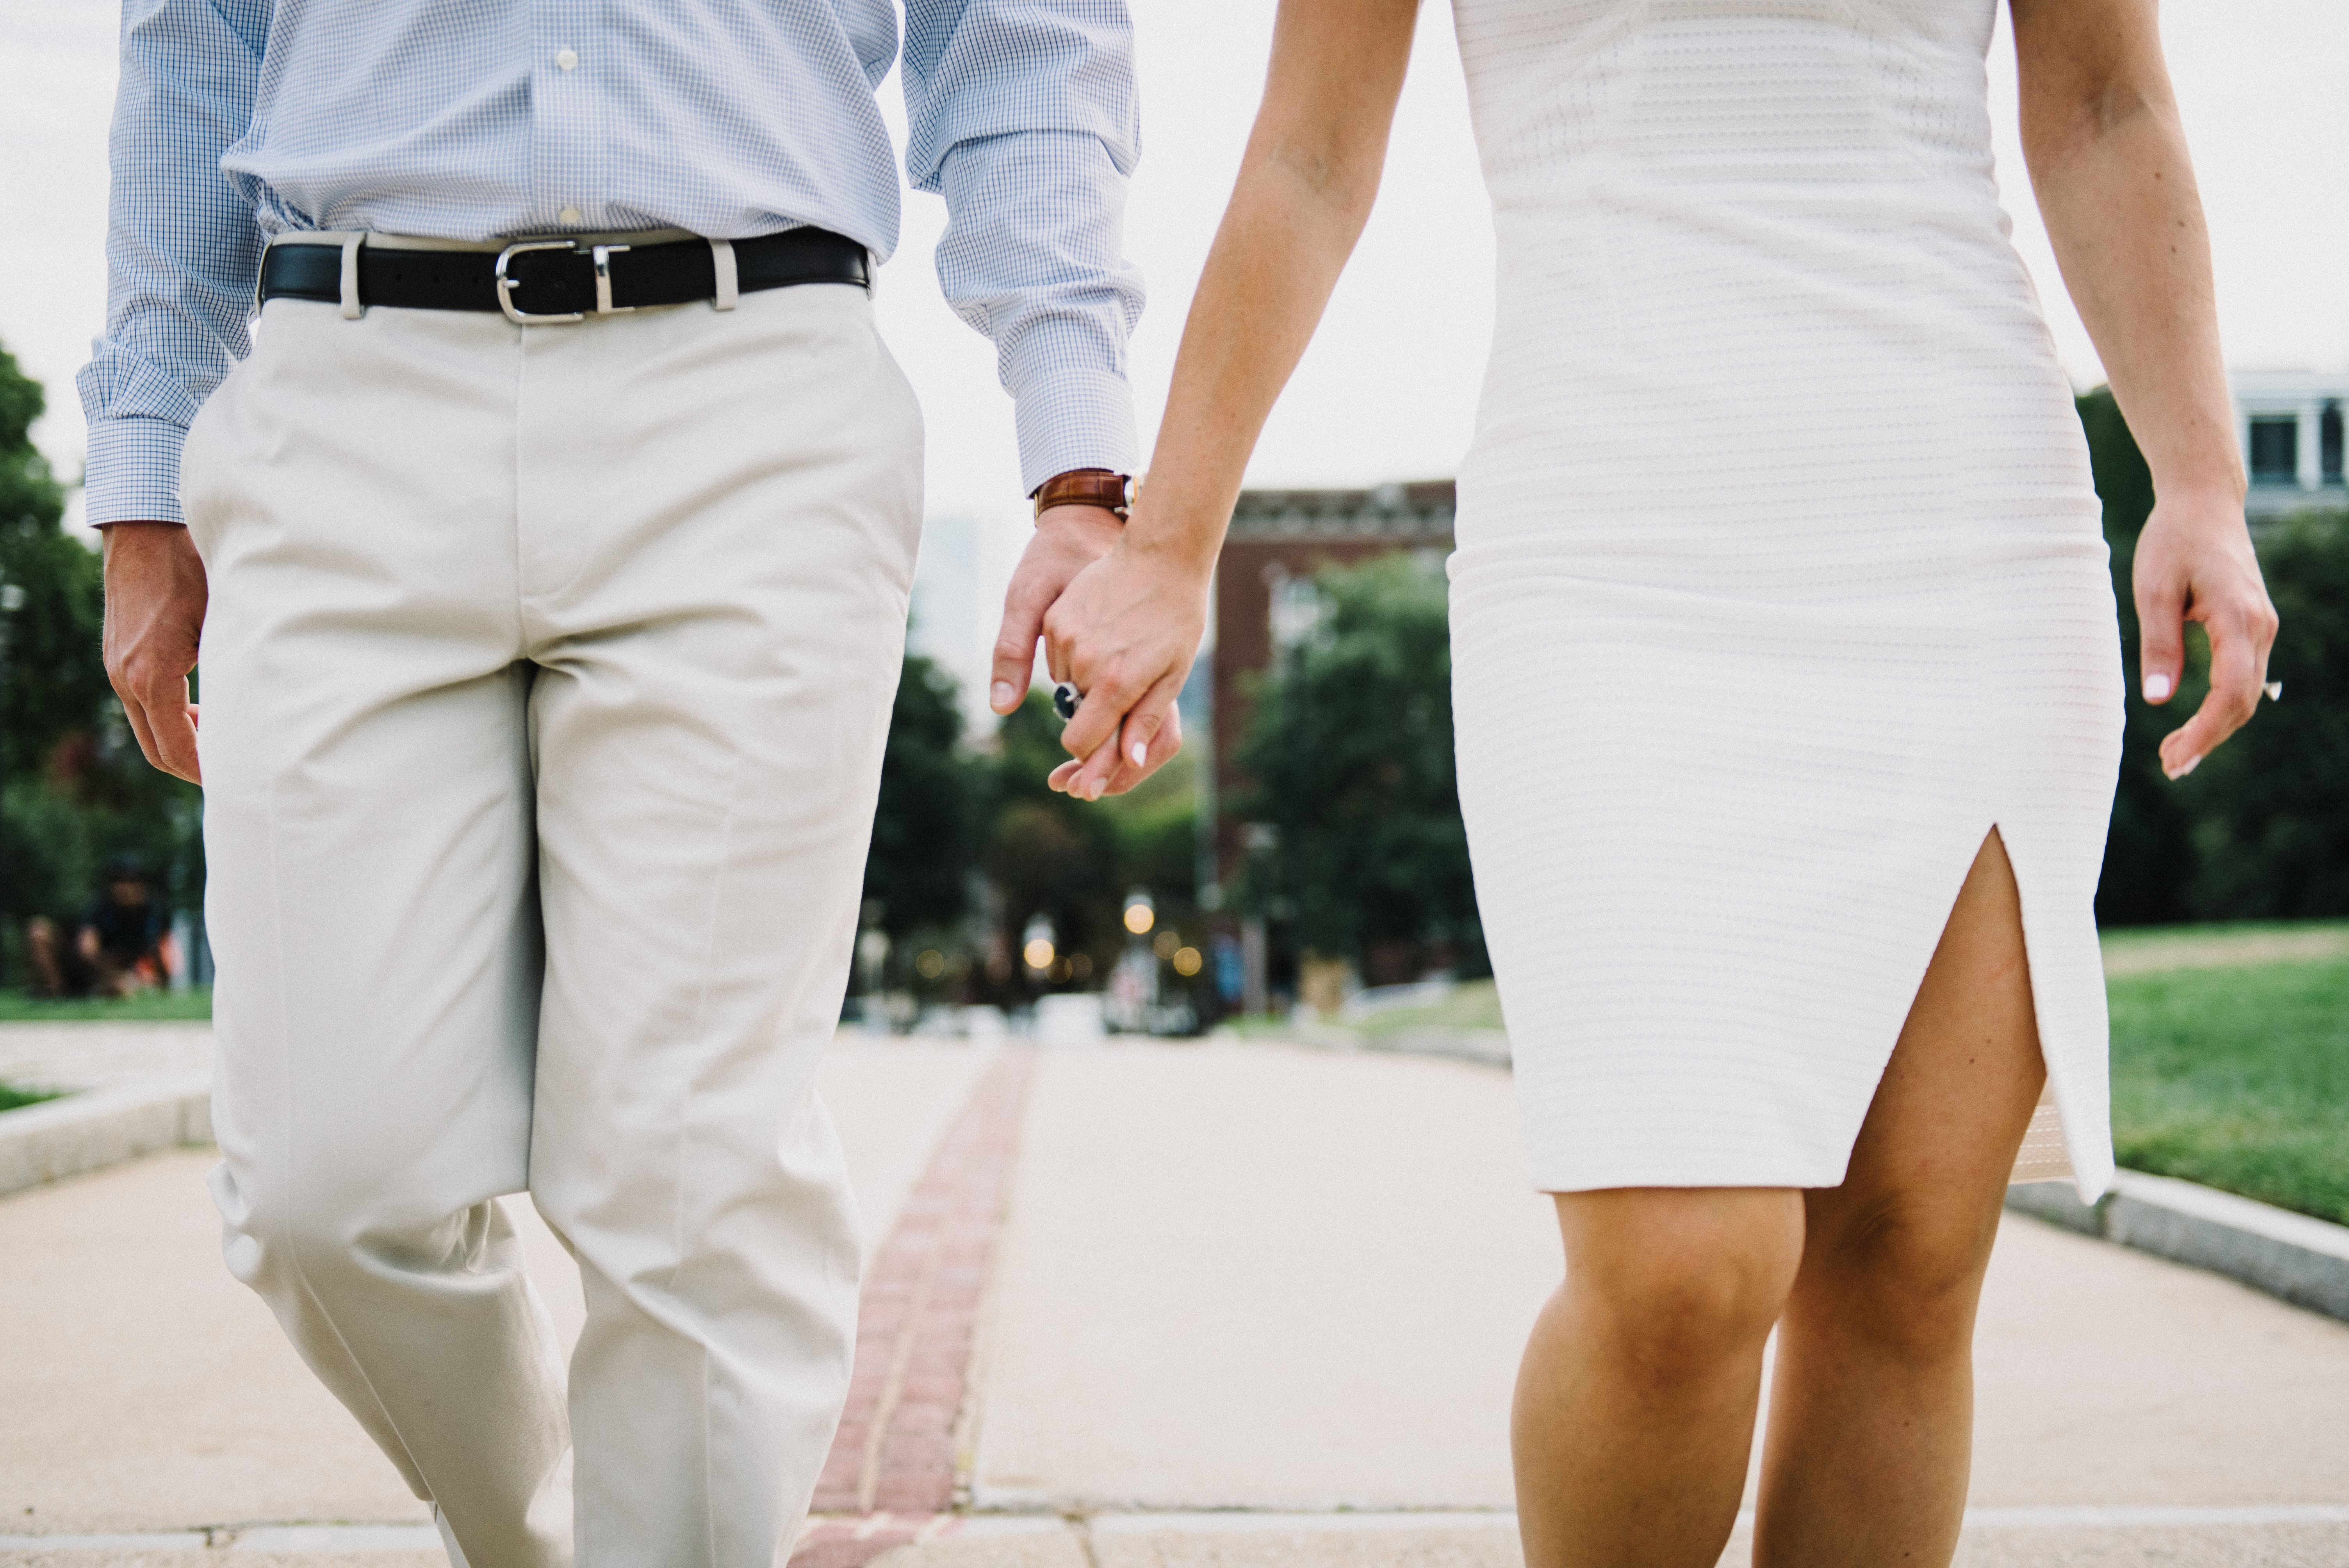 A dressed-up couple holds hands and strolls on a path through a Boston park